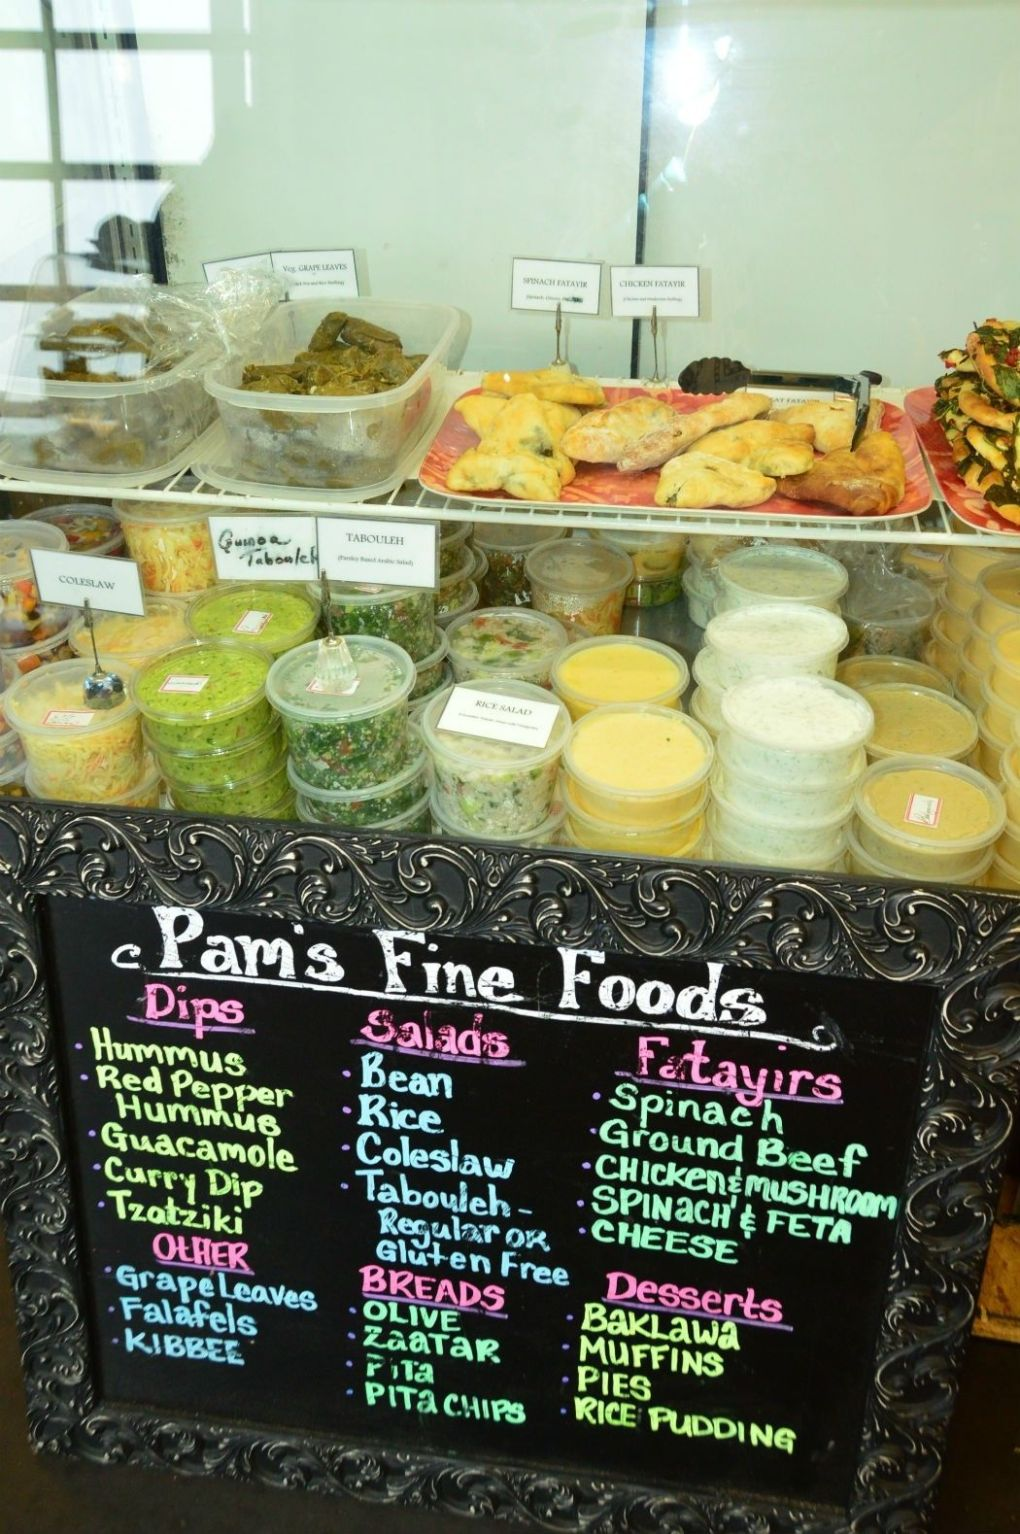 pam's fine foods dips menu and products